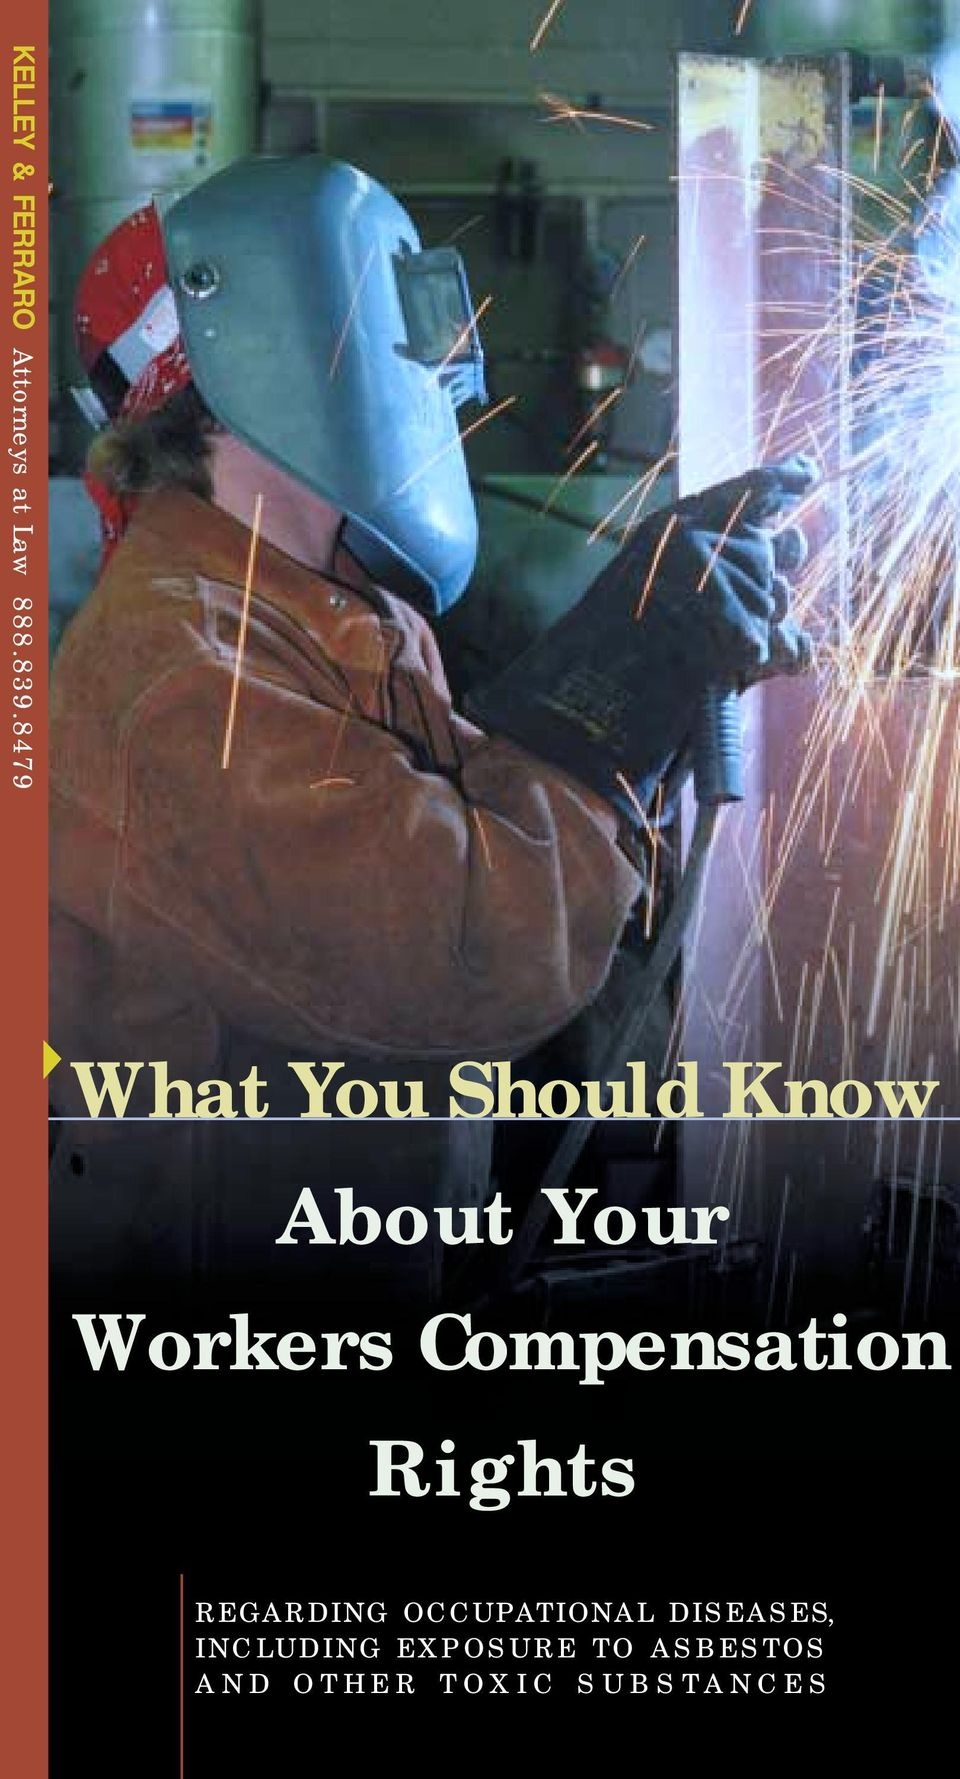 Compensation Rights REGARDING OCCUPATIONAL